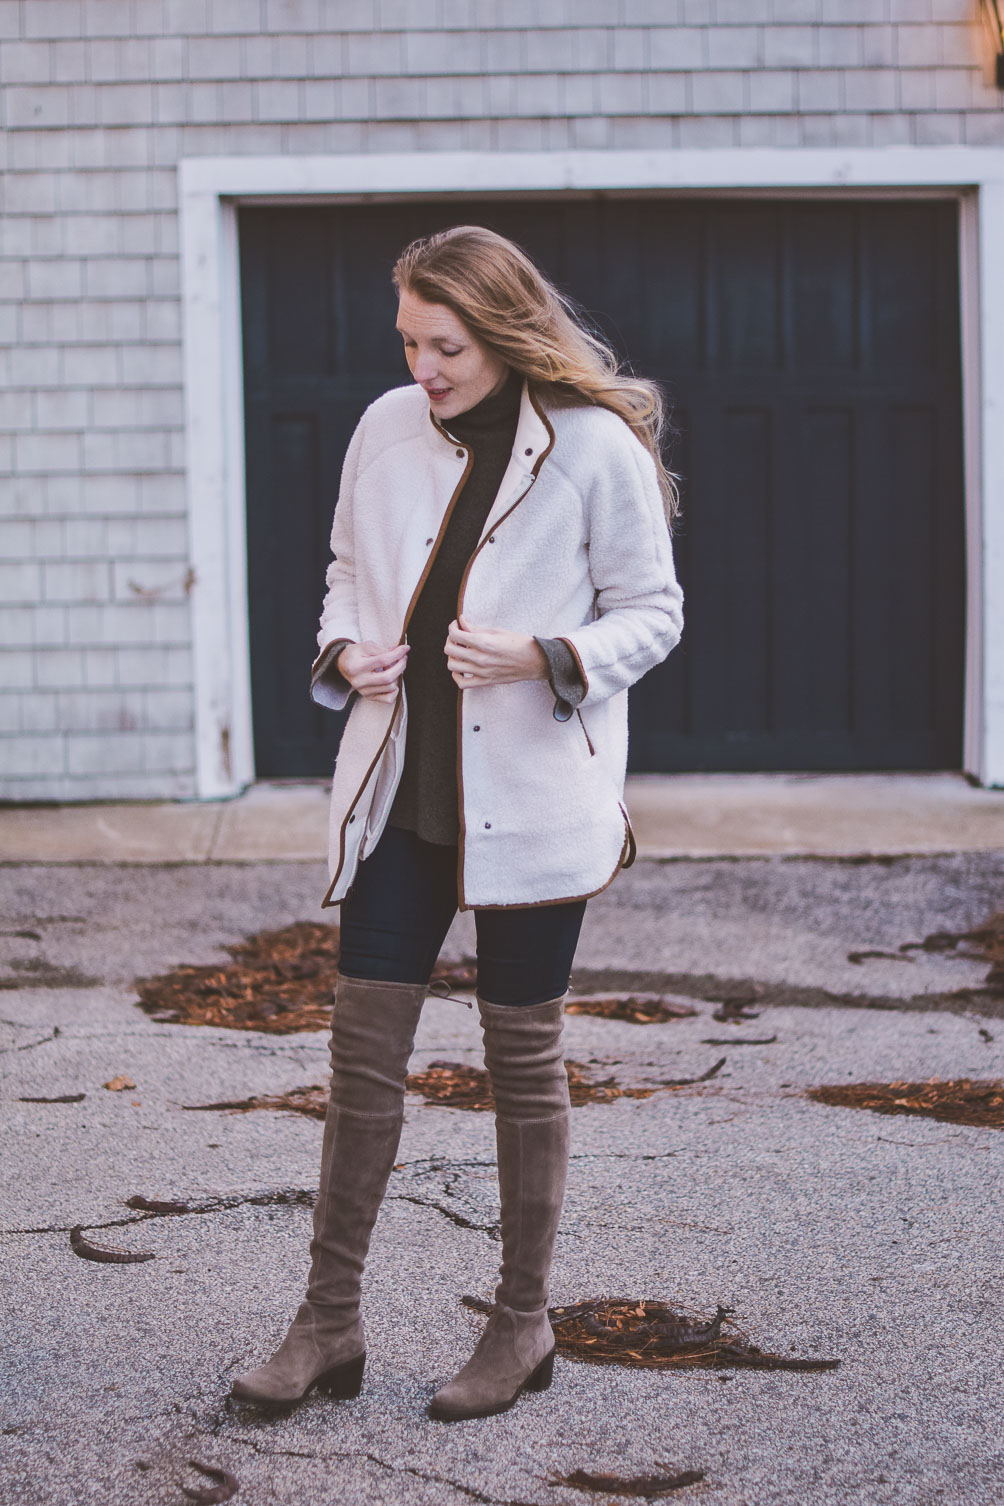 wearing a faux white sherpa jacket for styling neutrals with this cashmere sweater and over the knee Stuart Weitzman boots